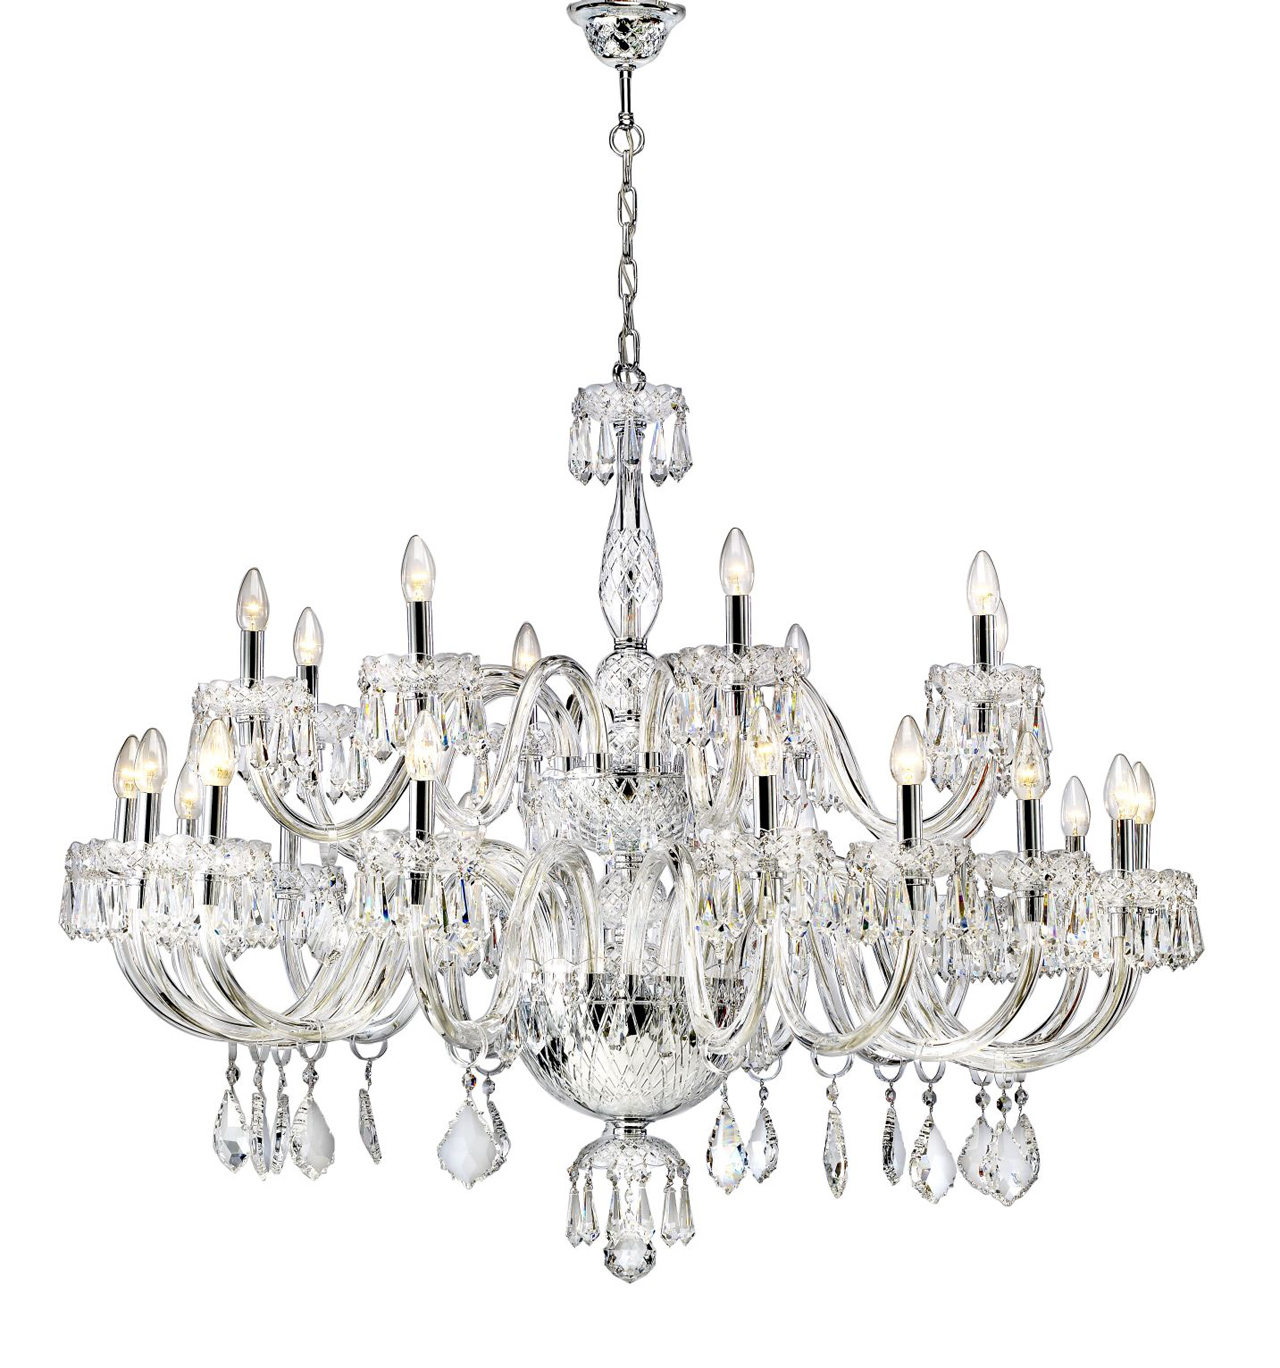 Chandelier With 2 Levels And 24 Arms Diamond | Vista Alegre